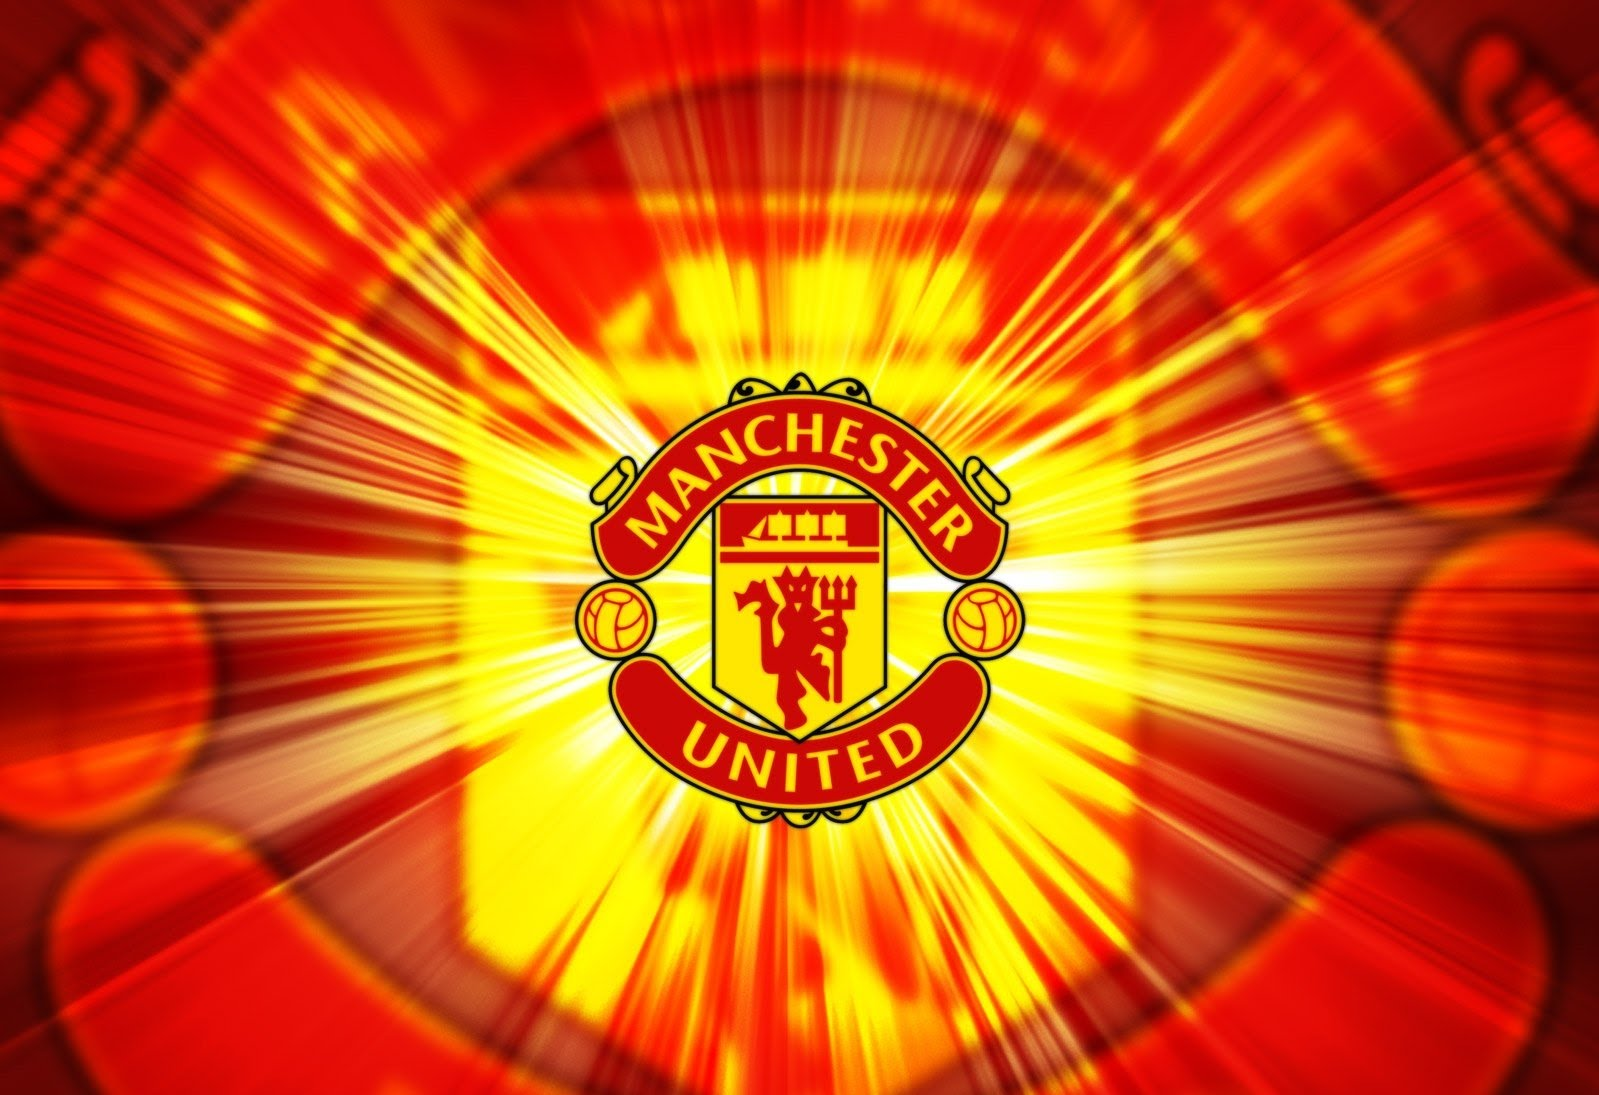 Hanunas manchester united 2011 manchester united 2011 wallpaper flag voltagebd Image collections